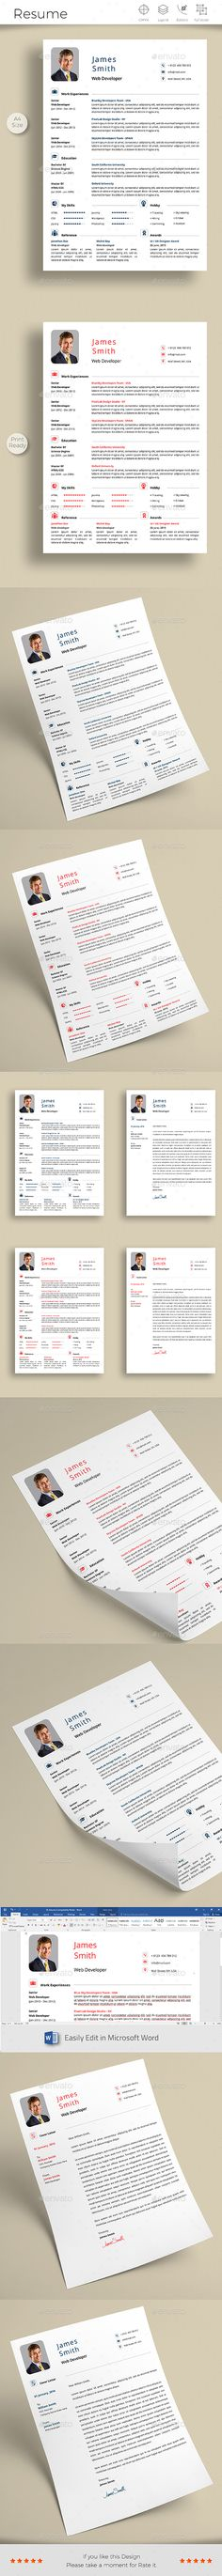 Resume - Resumes Stationery - Free Resume - Cv - curriculum vitae - print free resume